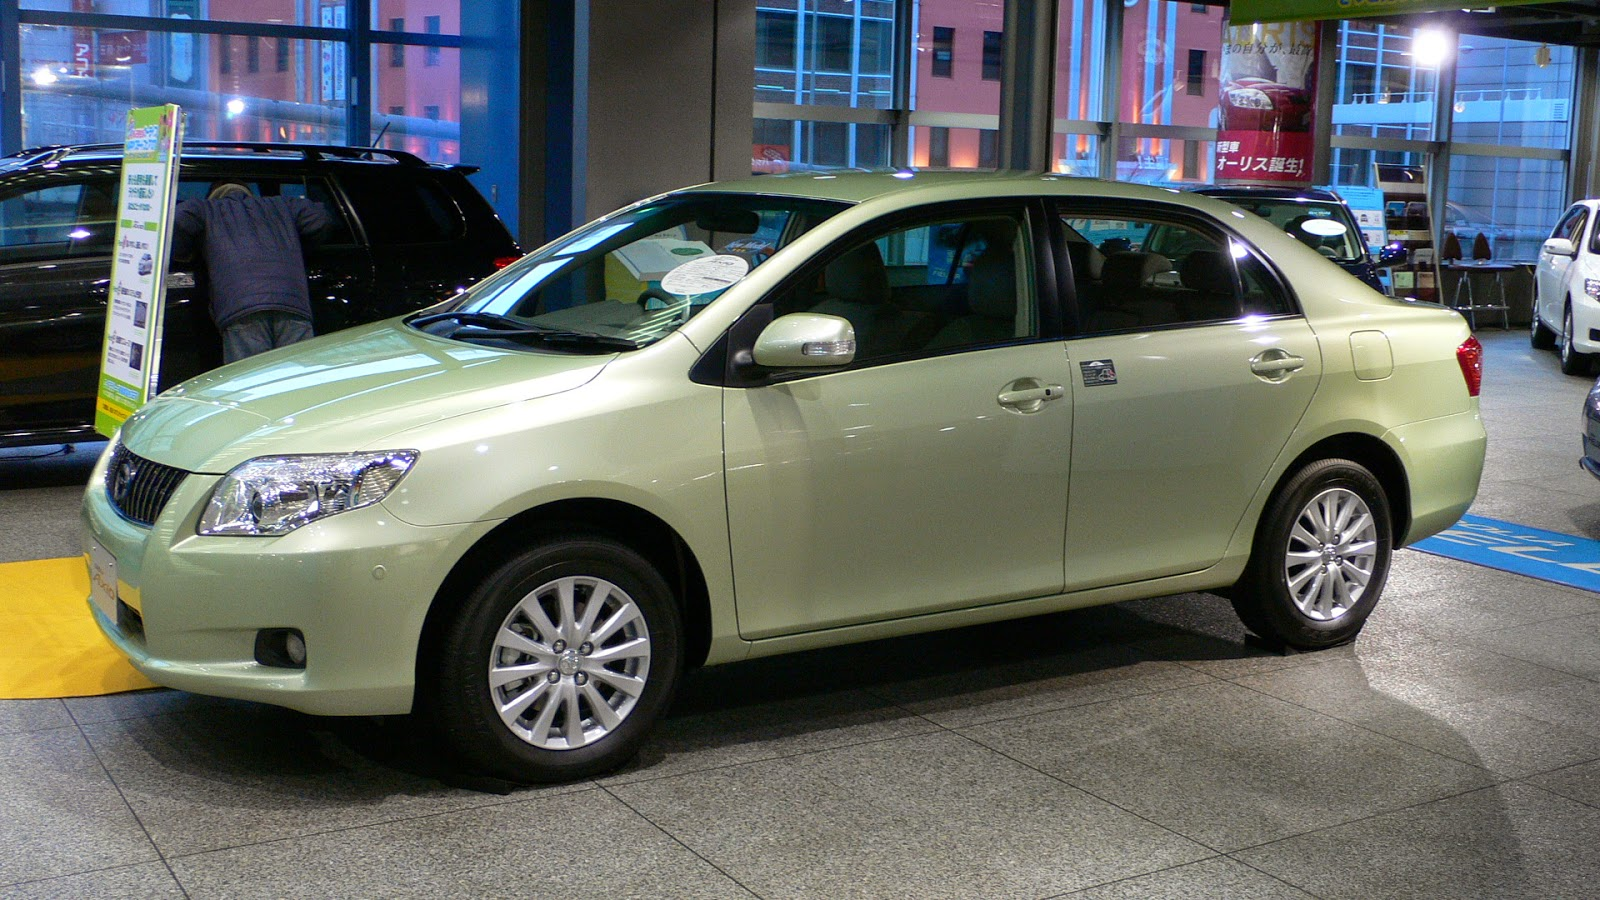 Toyota corolla common problem   To know,learn,do and more